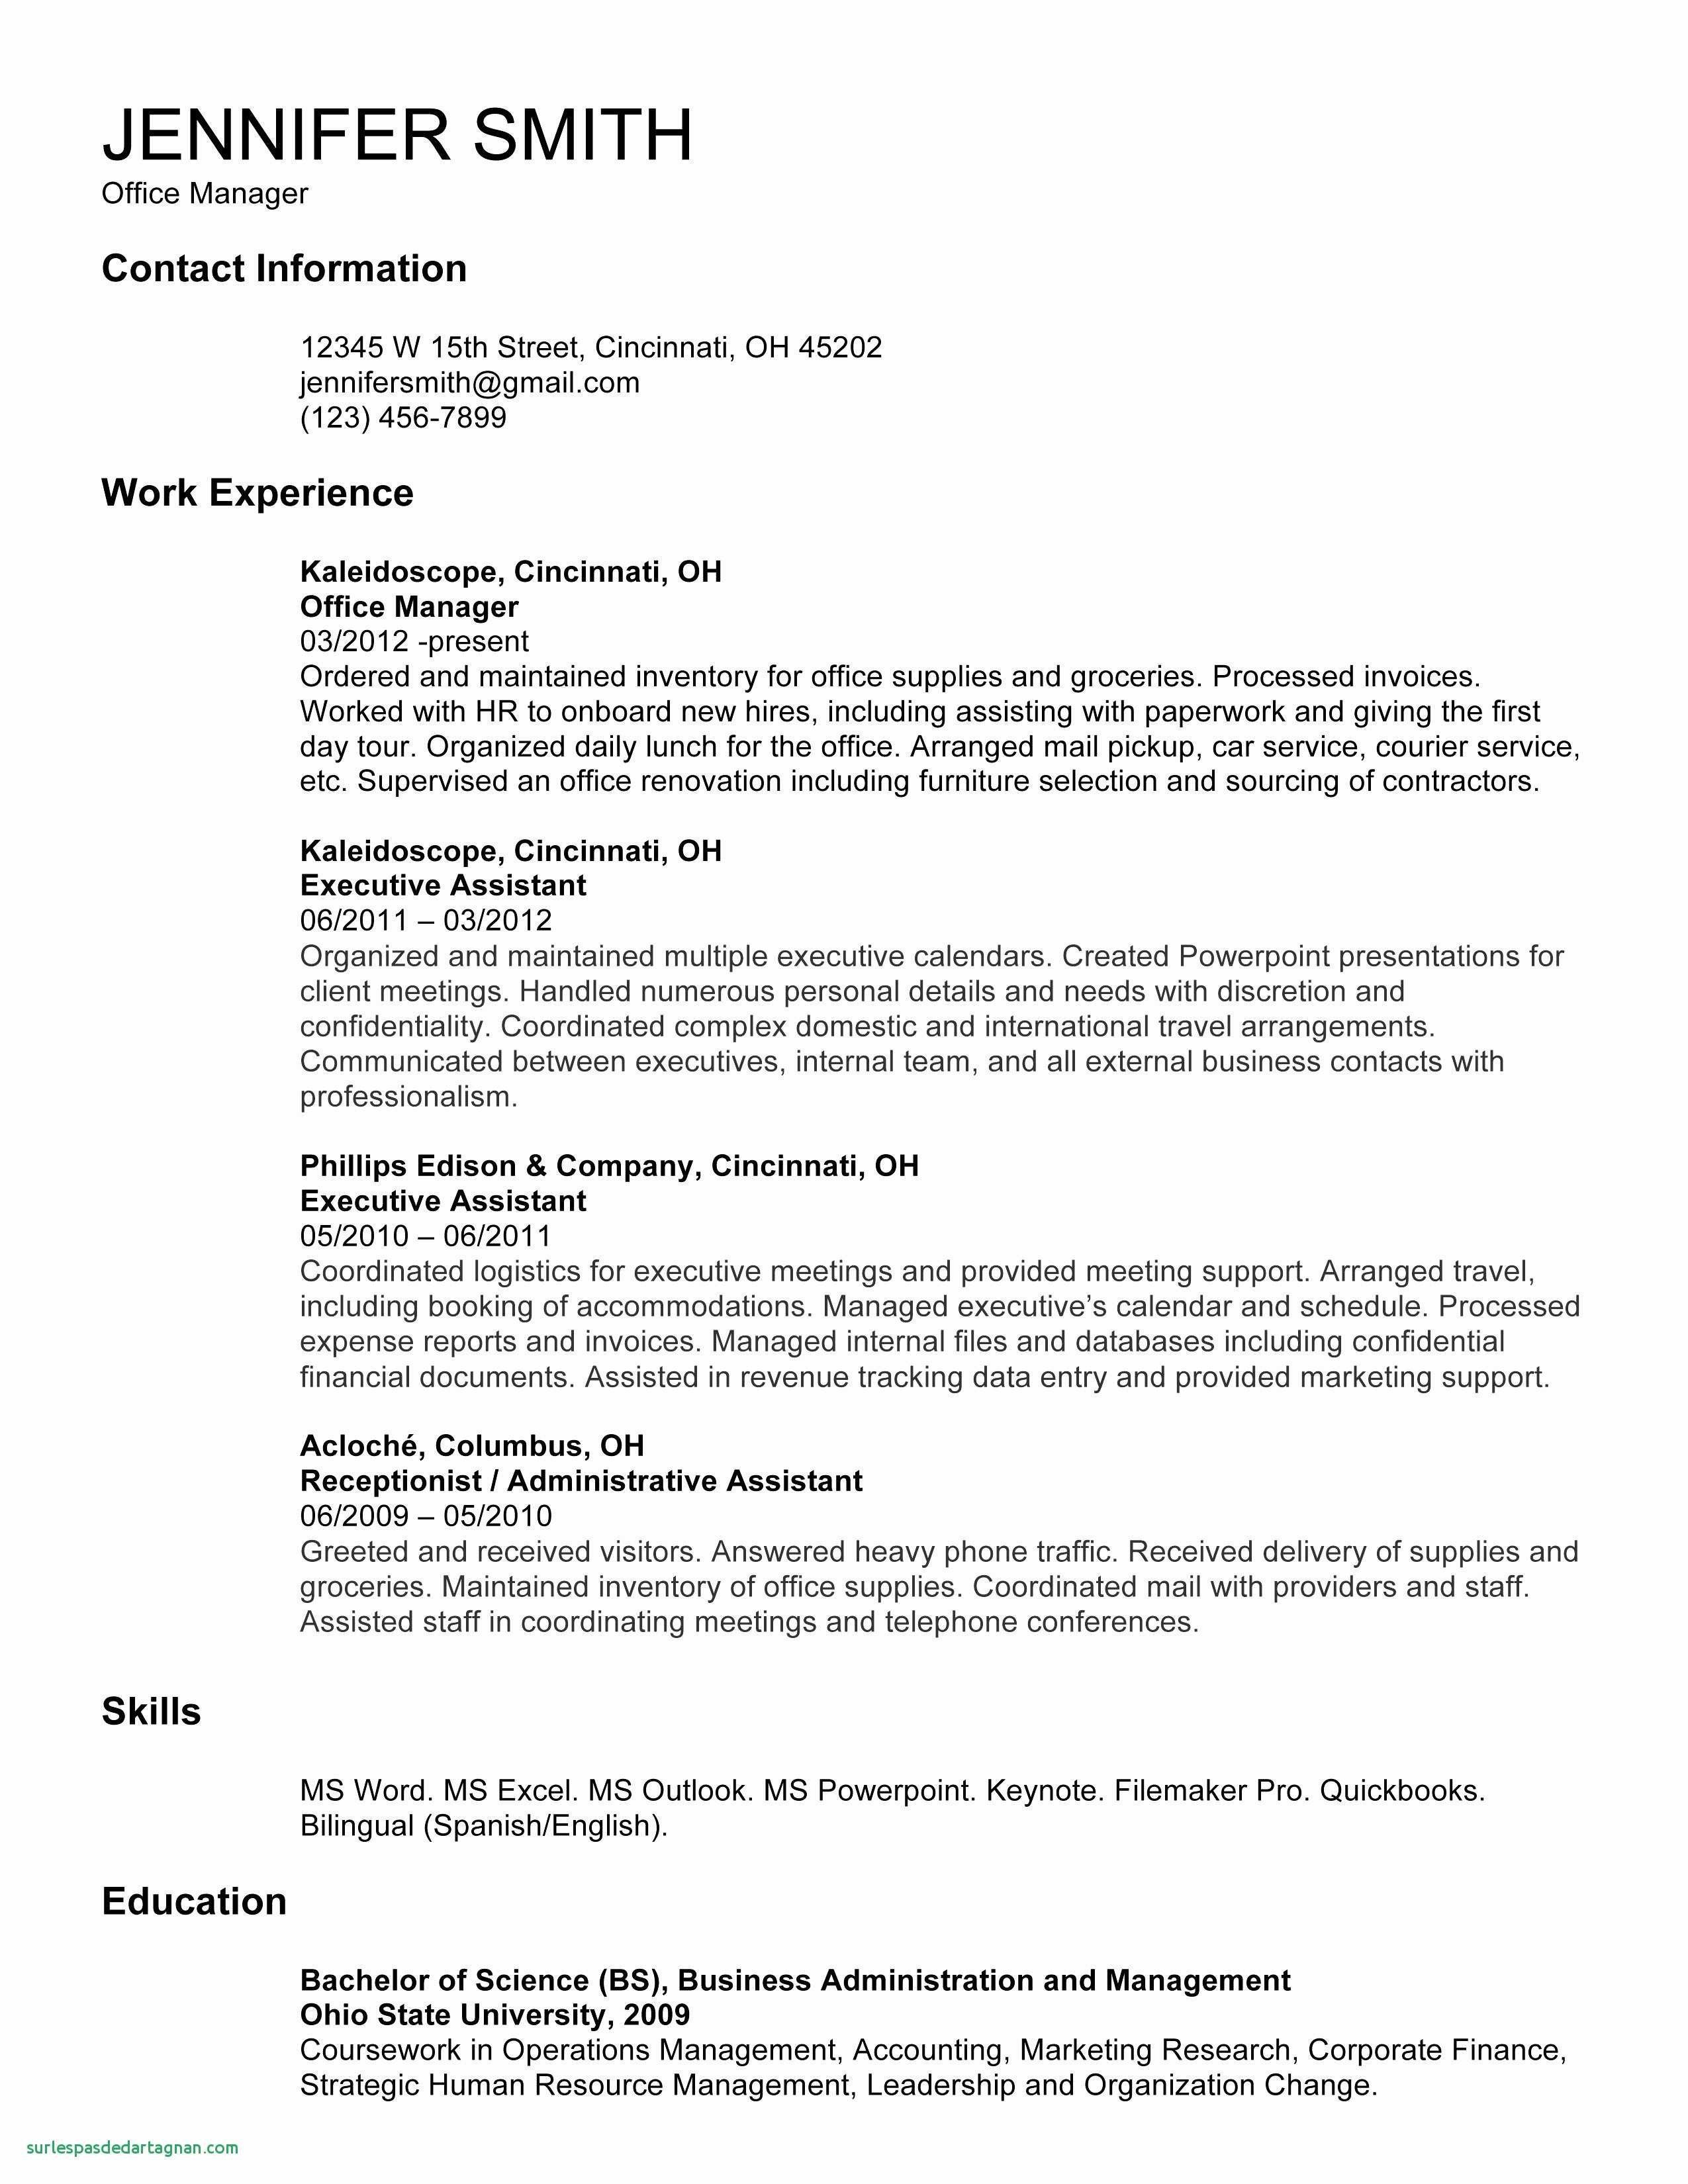 Publisher Resume Templates - Resume Template Download Free Unique ¢Ë†Å¡ Resume Template Download